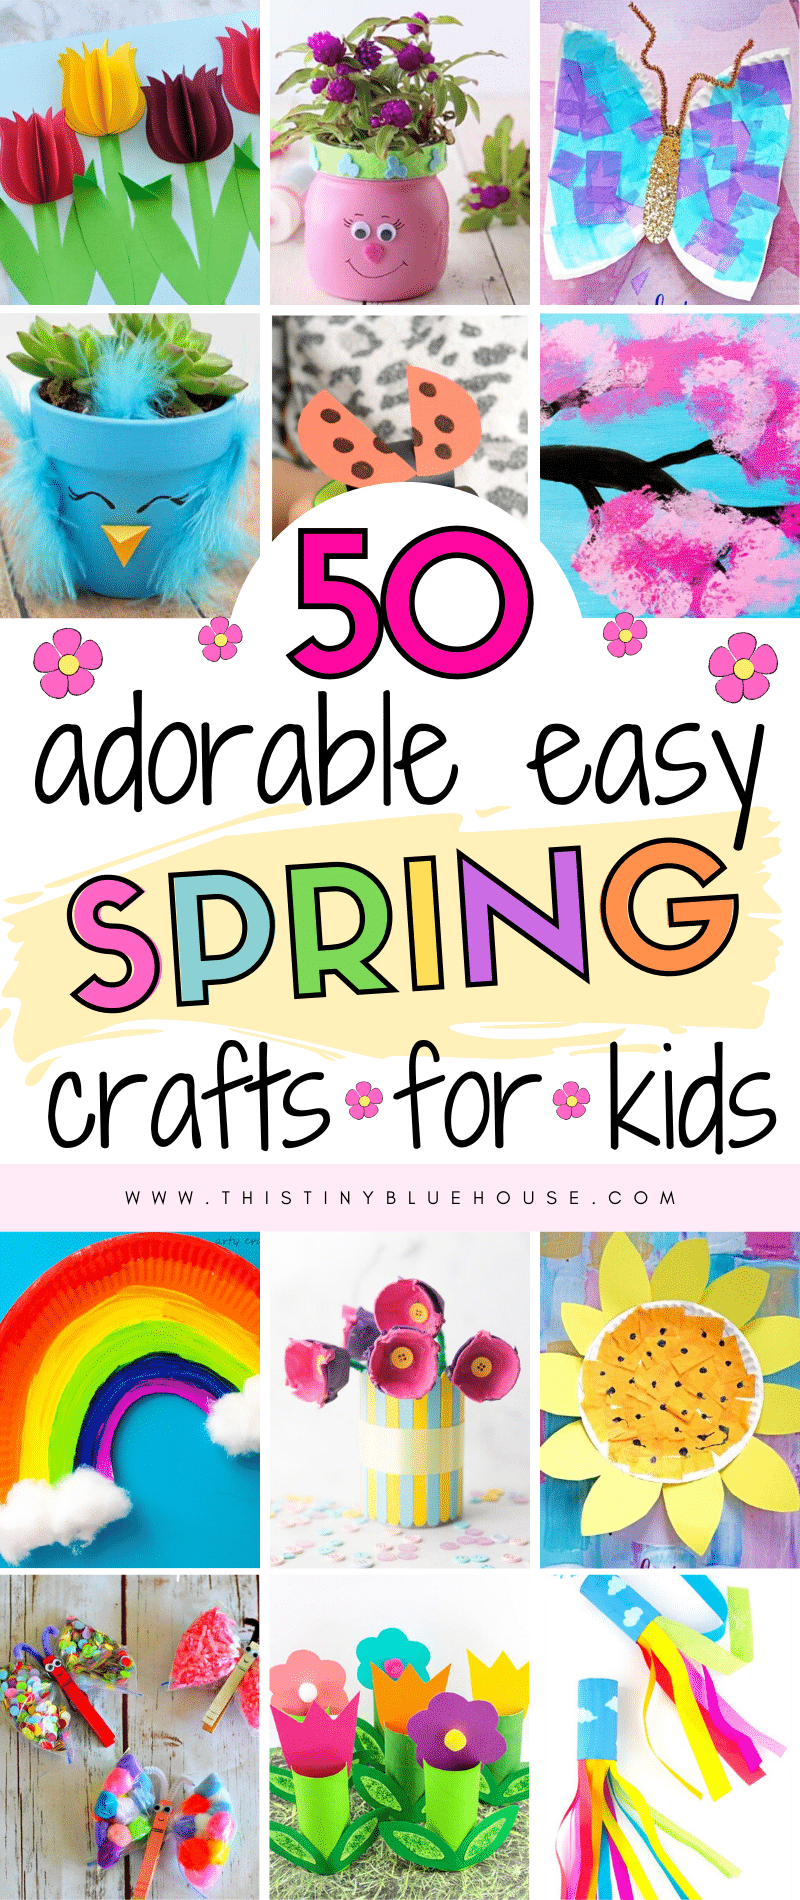 Welcome Spring with these fun adorable spring crafts for kids. From flowers to suncatchers there's an easy spring craft for even the youngest kids. #springcrafts #easyspringcrafts #springcraftsforkids #springcraftsfortoddlers #springcraftsforpreschoolers #cutespringcrafts #cutespringcraftsforyoungkids